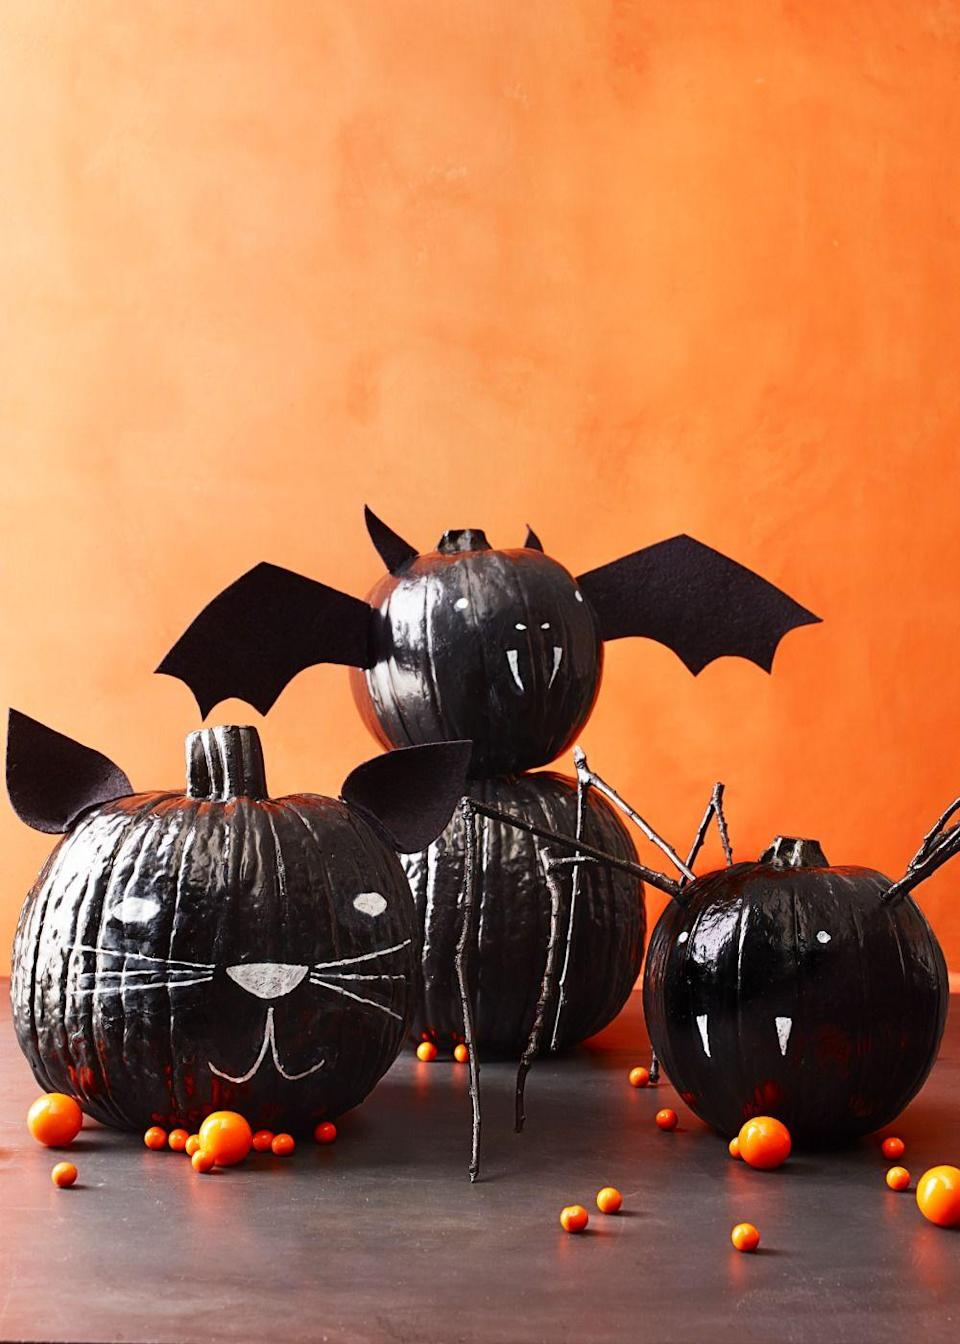 """<p>Create a group of creepy crawlers with a two coats of chalkboard paint. Once they dry, use white chalk to draw on a cat's face. Finish by hot-gluing on <a href=""""https://www.amazon.com/Darice-FLT-0332-Stiff-Sheet-Black/dp/B0054G5JT2?tag=syn-yahoo-20&ascsubtag=%5Bartid%7C10055.g.1714%5Bsrc%7Cyahoo-us"""" rel=""""nofollow noopener"""" target=""""_blank"""" data-ylk=""""slk:black felt"""" class=""""link rapid-noclick-resp"""">black felt</a> ears. For the bat, glue on felt wings. And for the spider, paint eight twigs and make holes around the top of the pumpkin with a screwdriver. Position the sticks in the holes and secure with hot glue.</p><p><a class=""""link rapid-noclick-resp"""" href=""""https://www.amazon.com/Rust-Oleum-1913830-6-PK-Chalkboard-1913830/dp/B01MTDQTLJ/ref=sr_1_2?tag=syn-yahoo-20&ascsubtag=%5Bartid%7C10055.g.1714%5Bsrc%7Cyahoo-us"""" rel=""""nofollow noopener"""" target=""""_blank"""" data-ylk=""""slk:SHOP CHALKBOARD PAINT"""">SHOP CHALKBOARD PAINT</a><br></p>"""